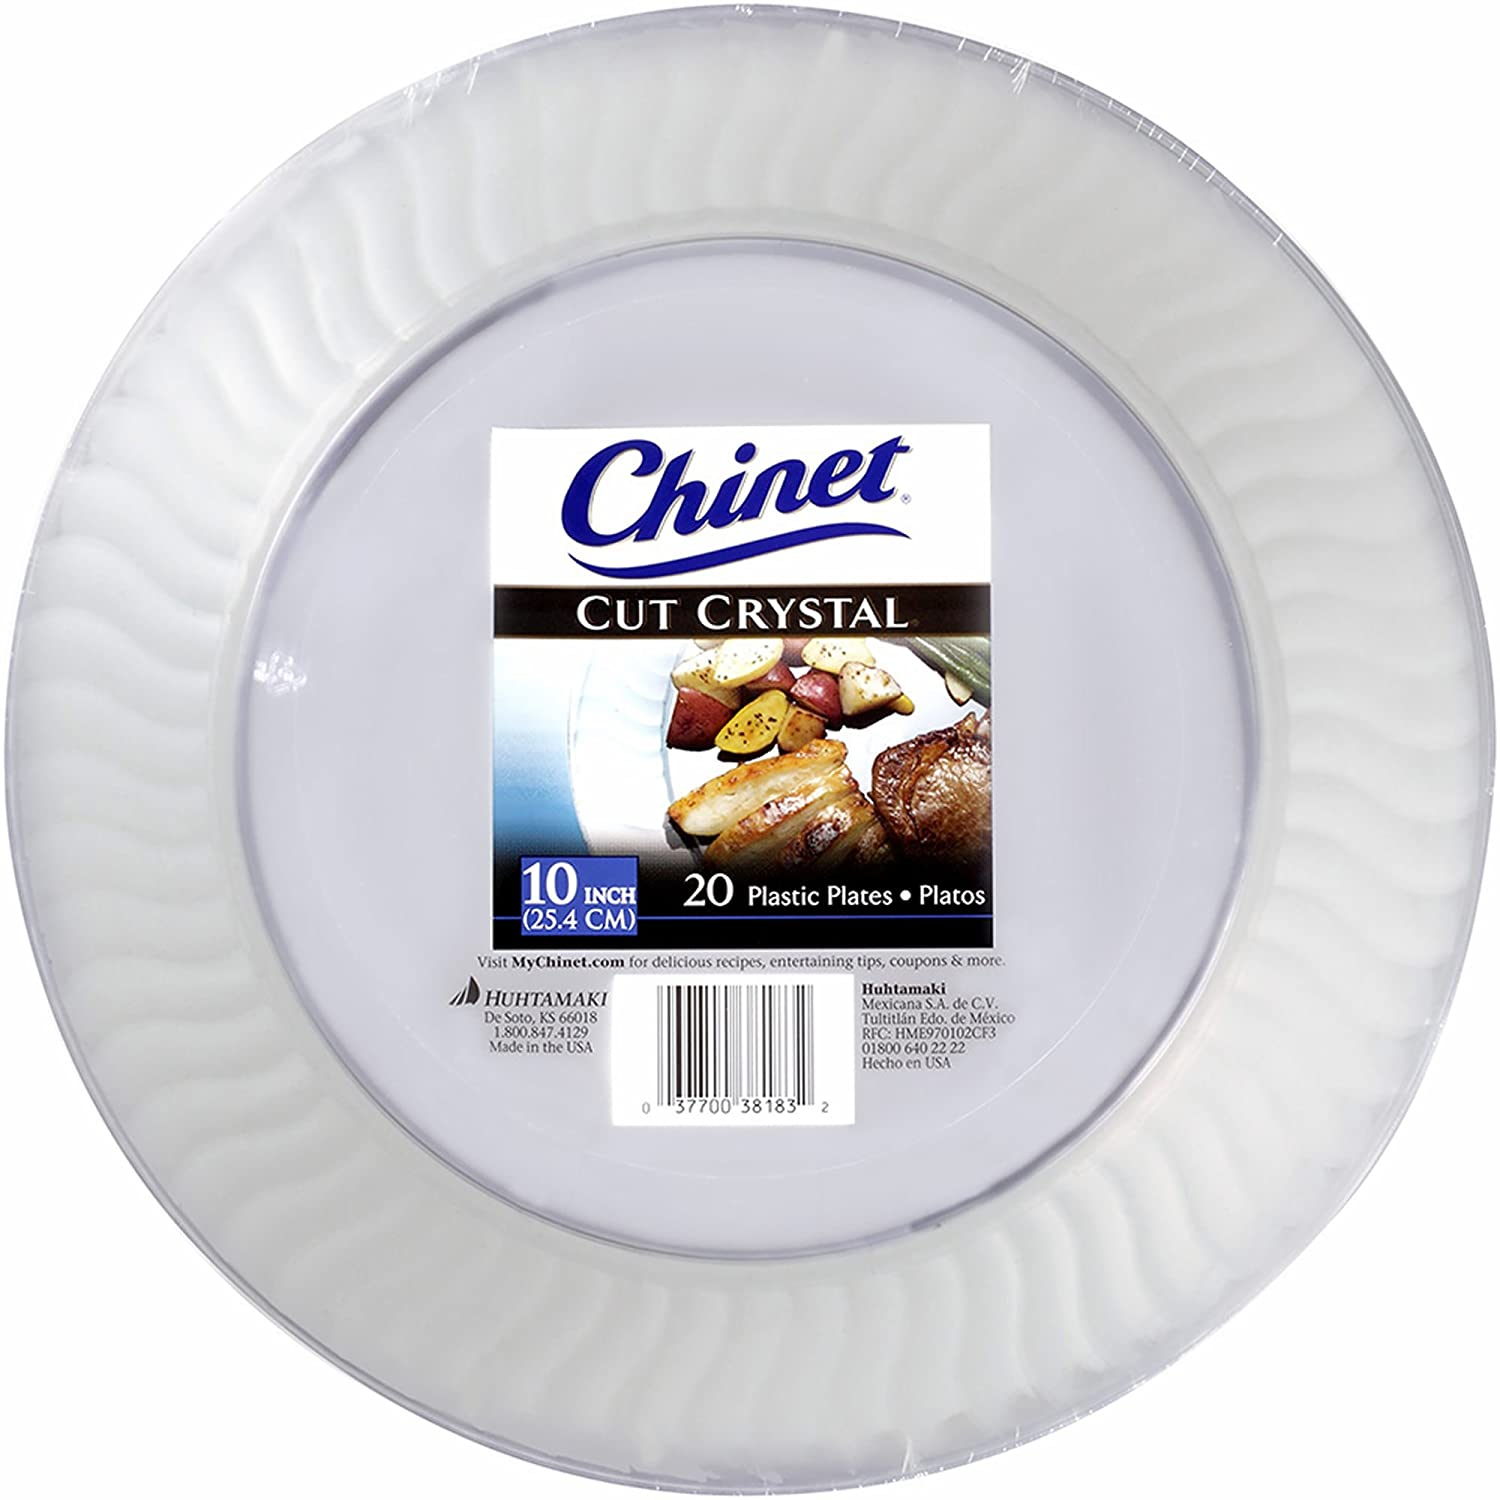 Amazon.com | Chinet Cut Crystal Clear Plastic 10 inch Plates 20 ct. Disposable Plates Dinner Plates  sc 1 st  Amazon.com & Amazon.com | Chinet Cut Crystal Clear Plastic 10 inch Plates 20 ct ...